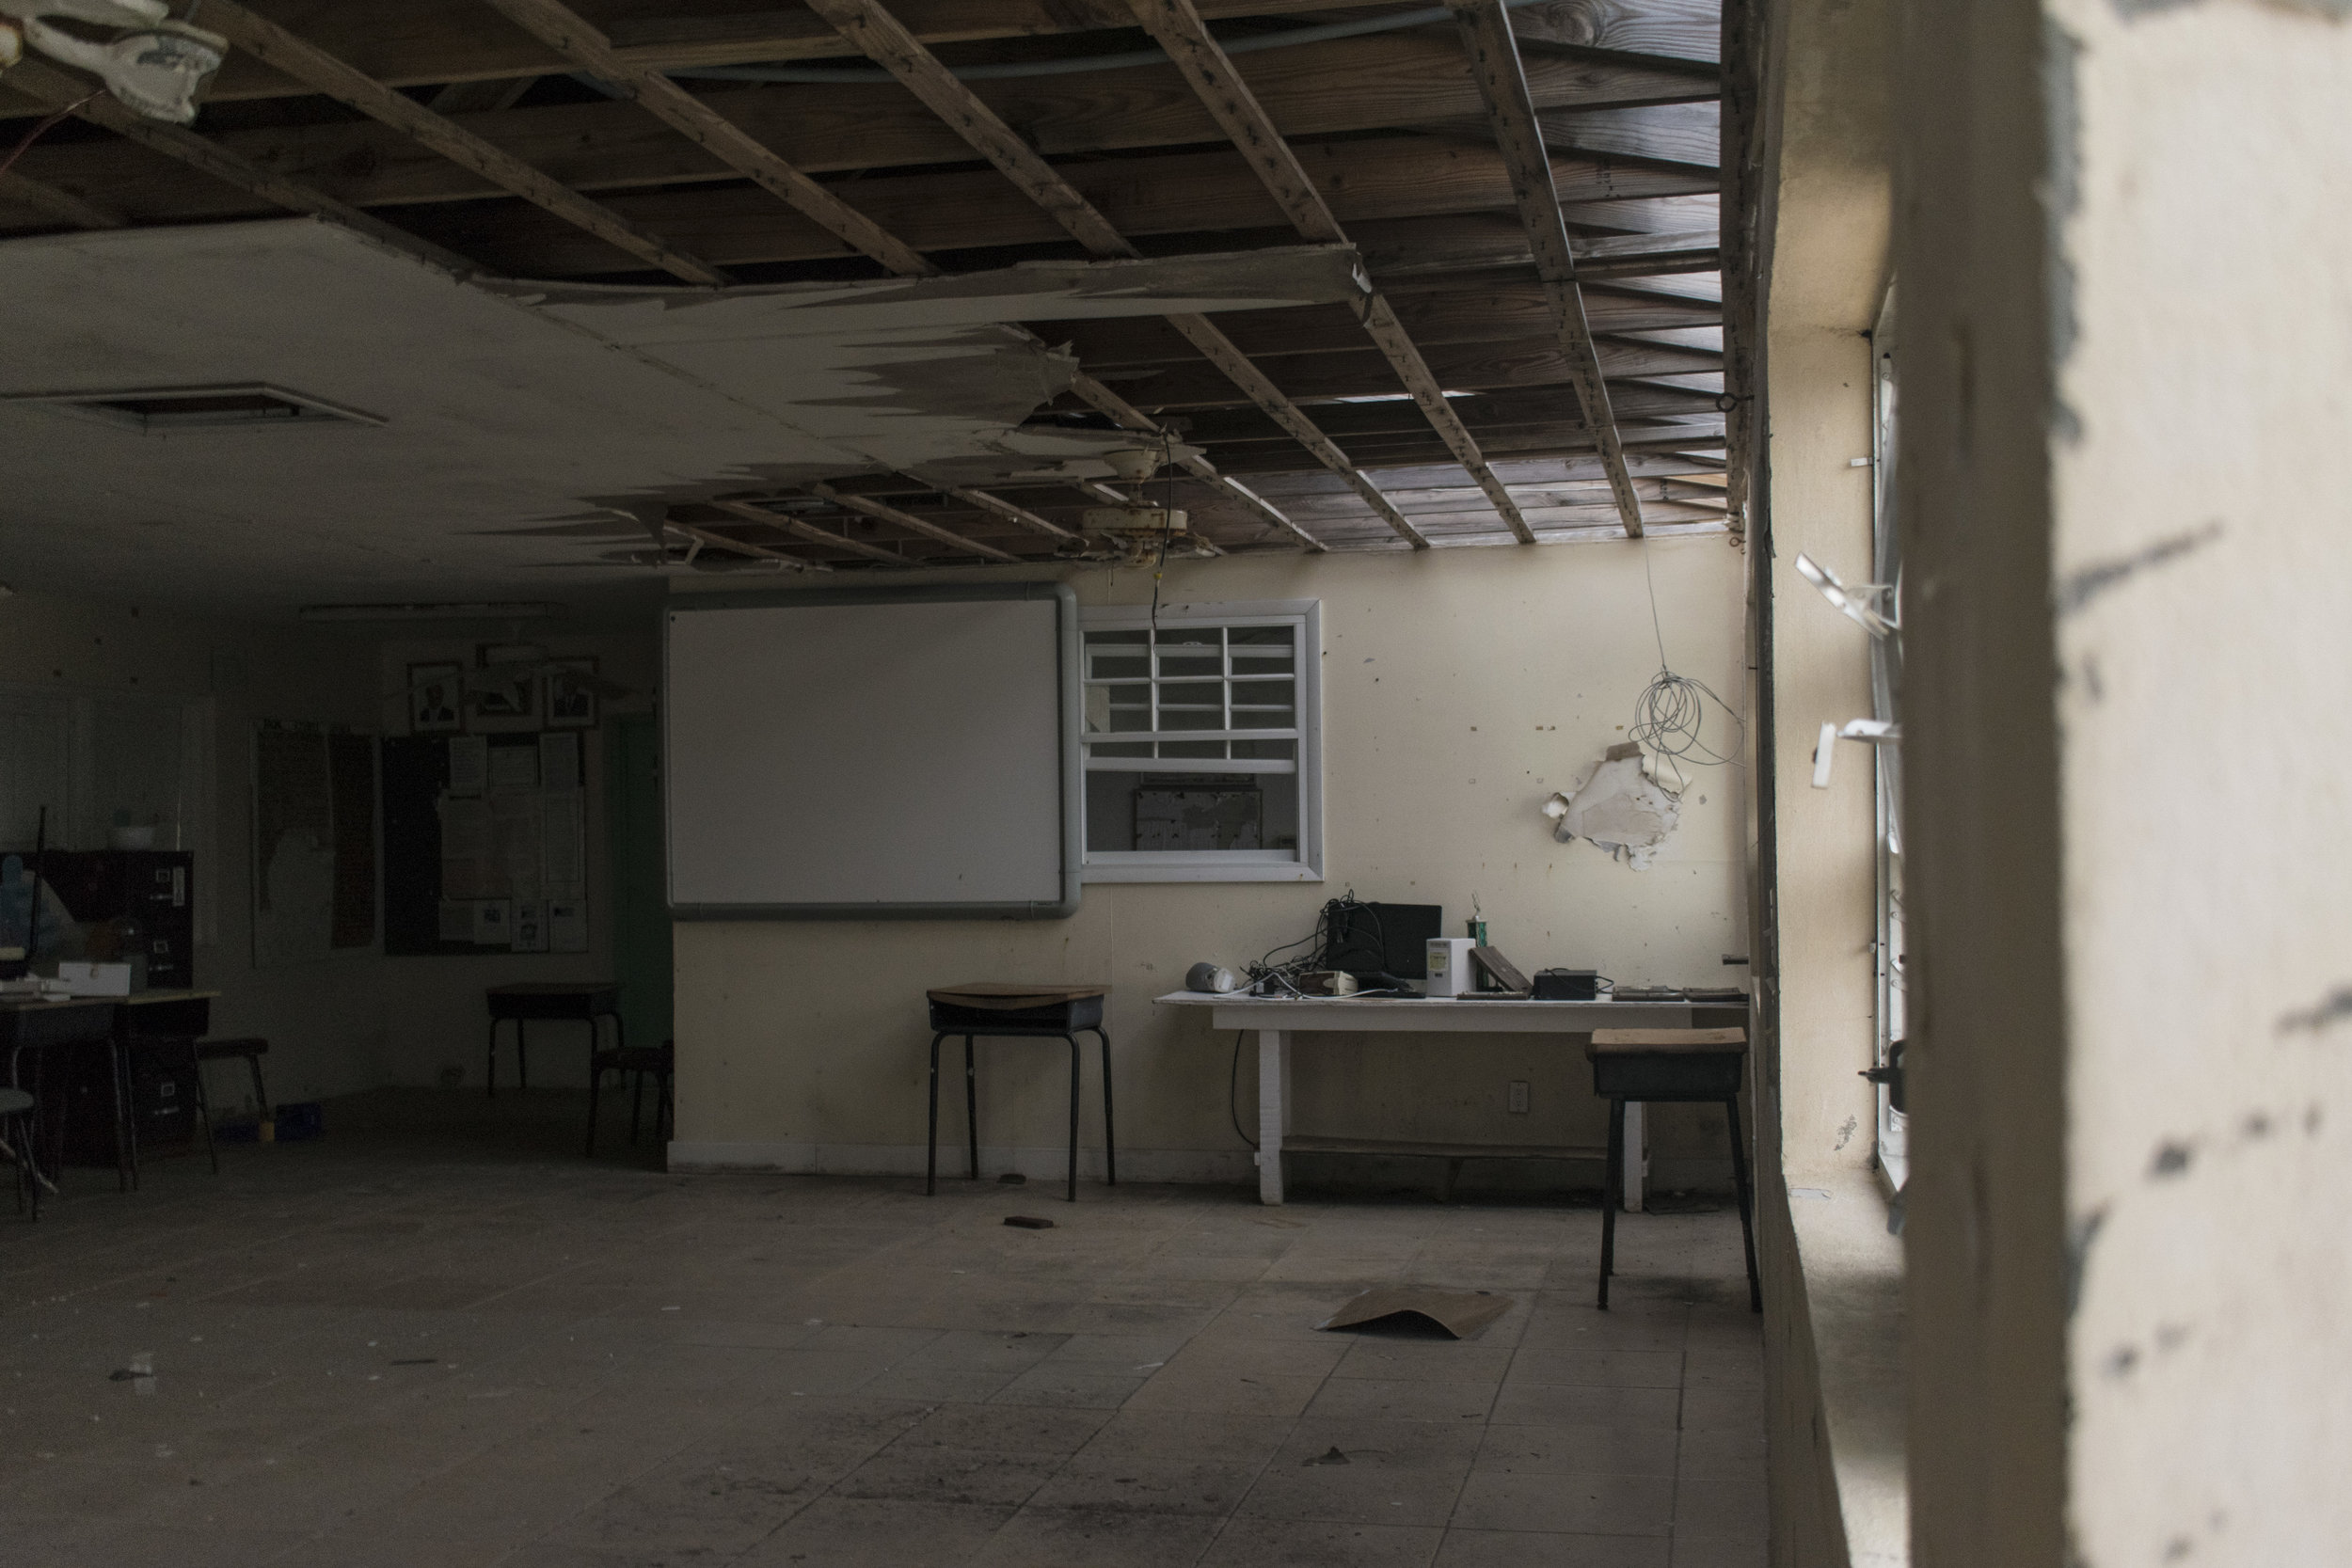 Interior of Ragged Island All Age School, July 2018. Photo by Ethan Knowles.